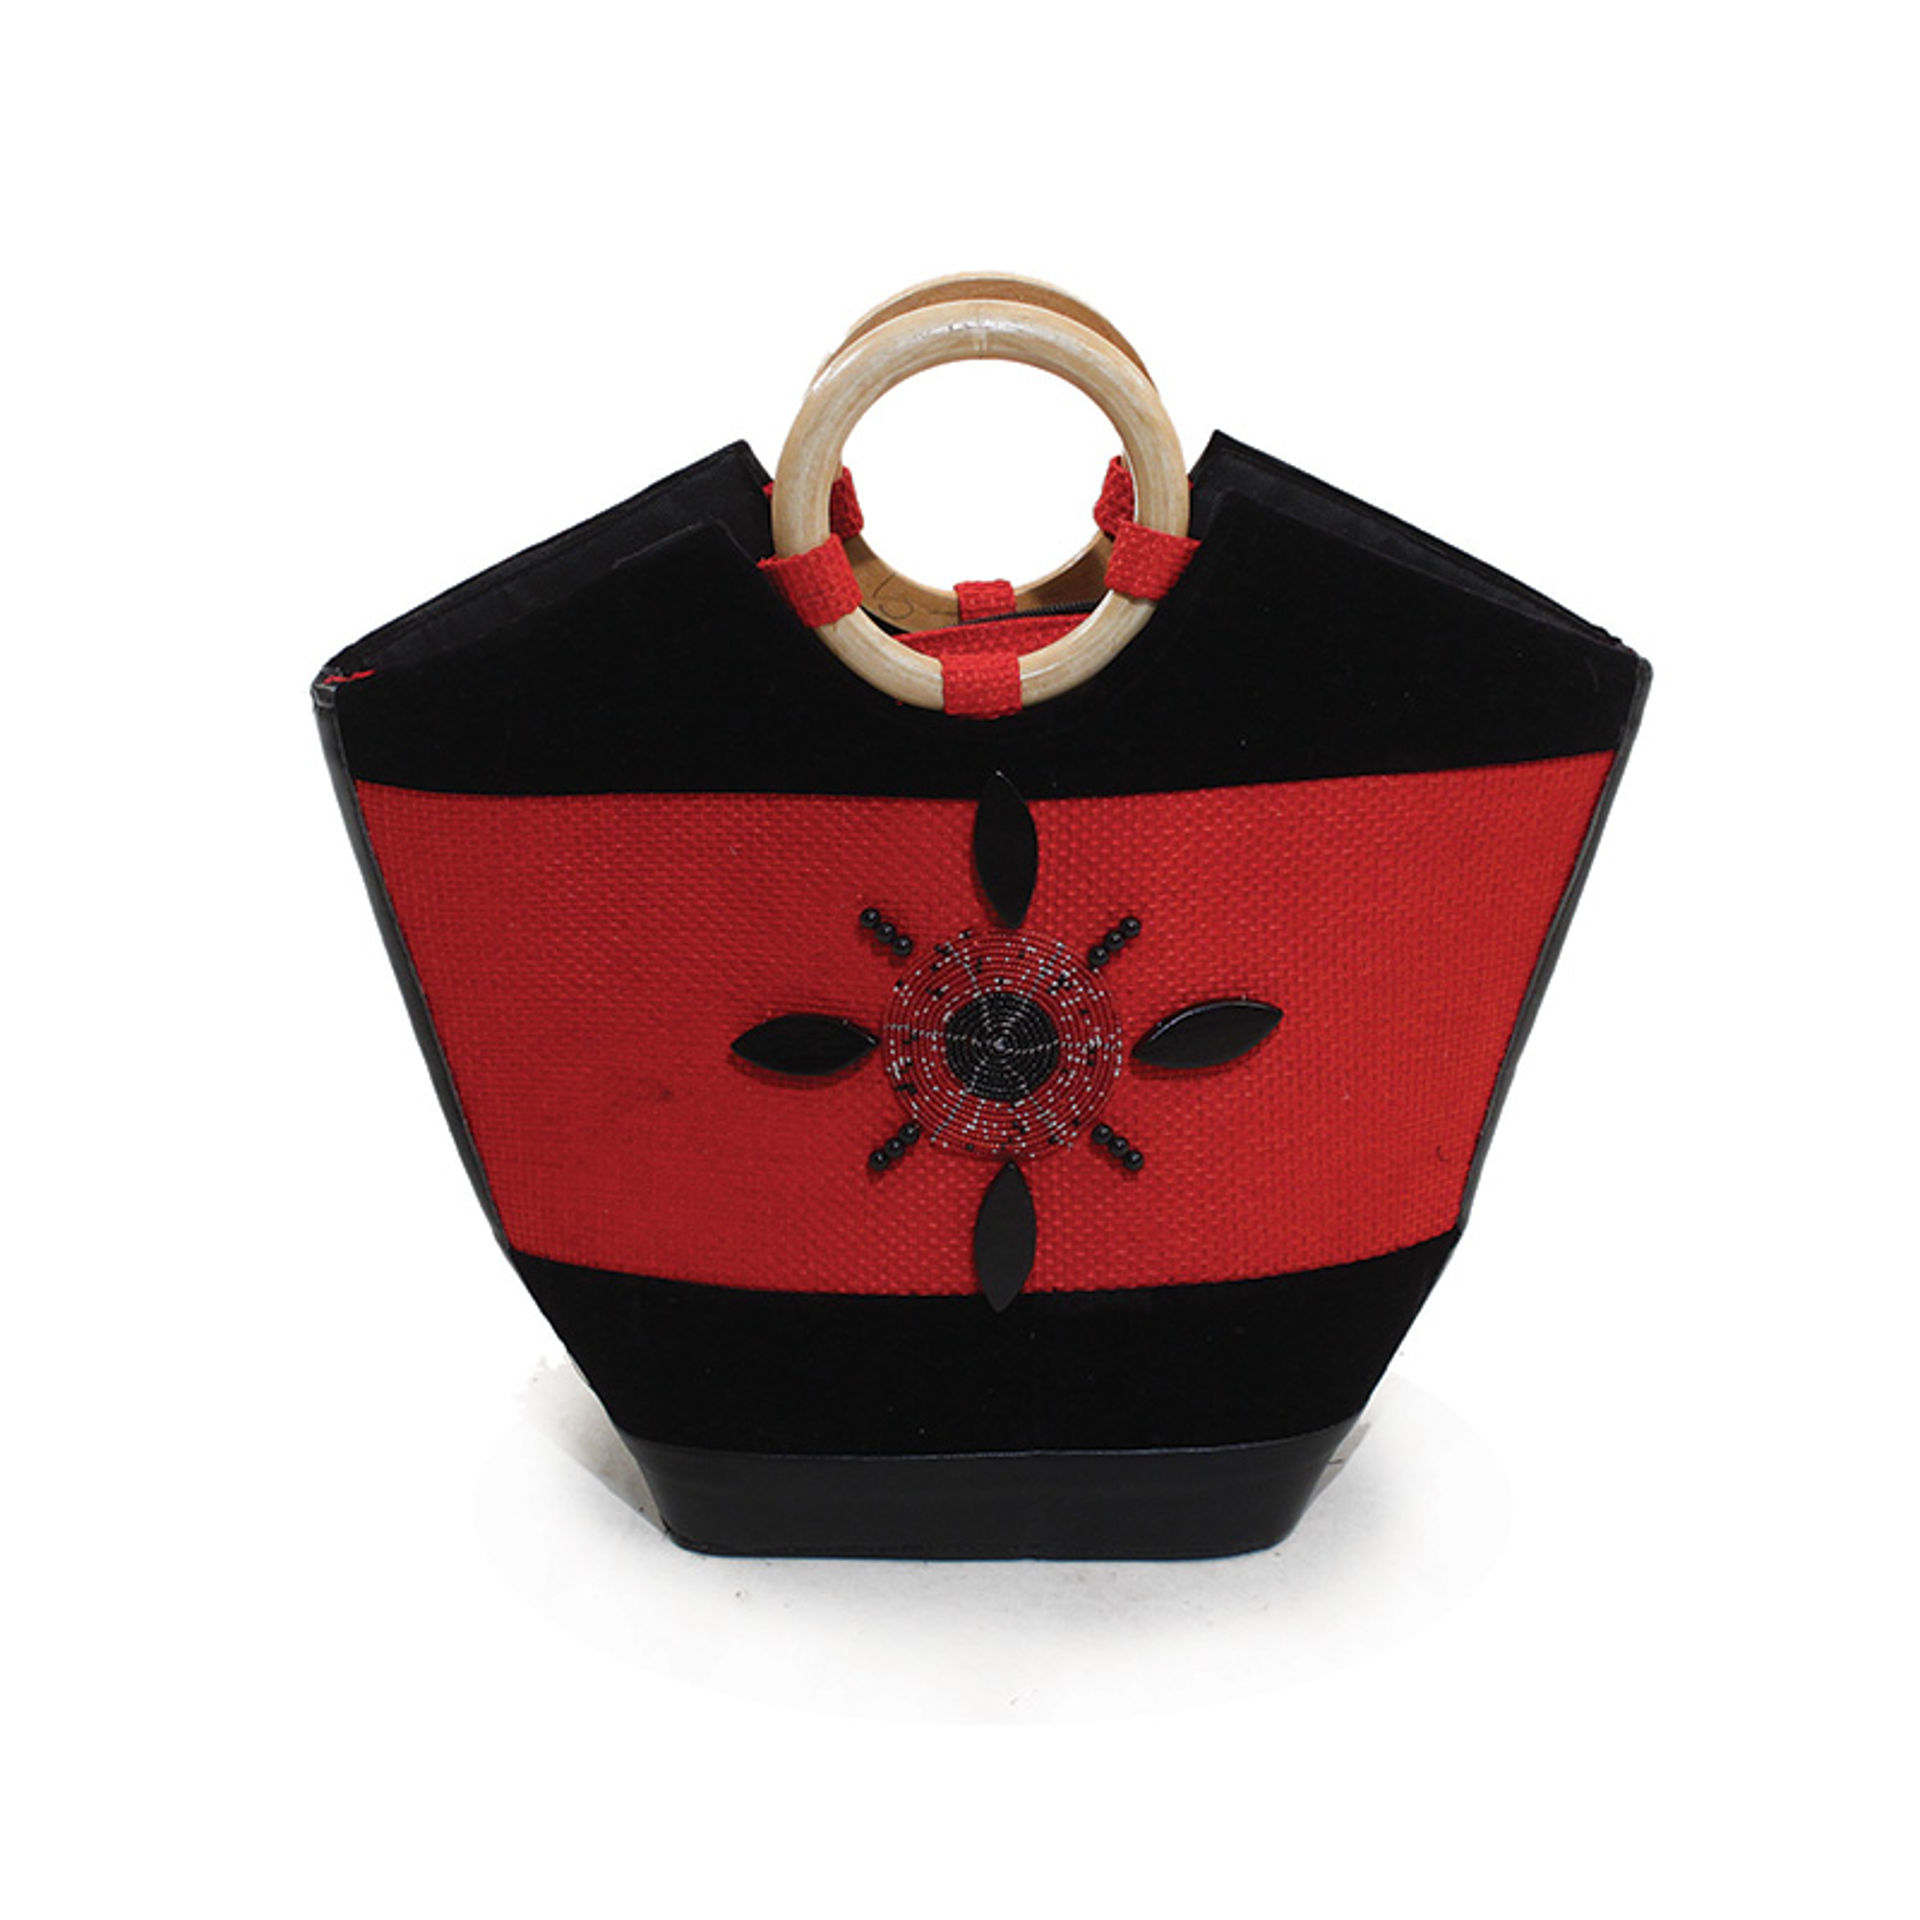 Picture of Leather Handbag - Red